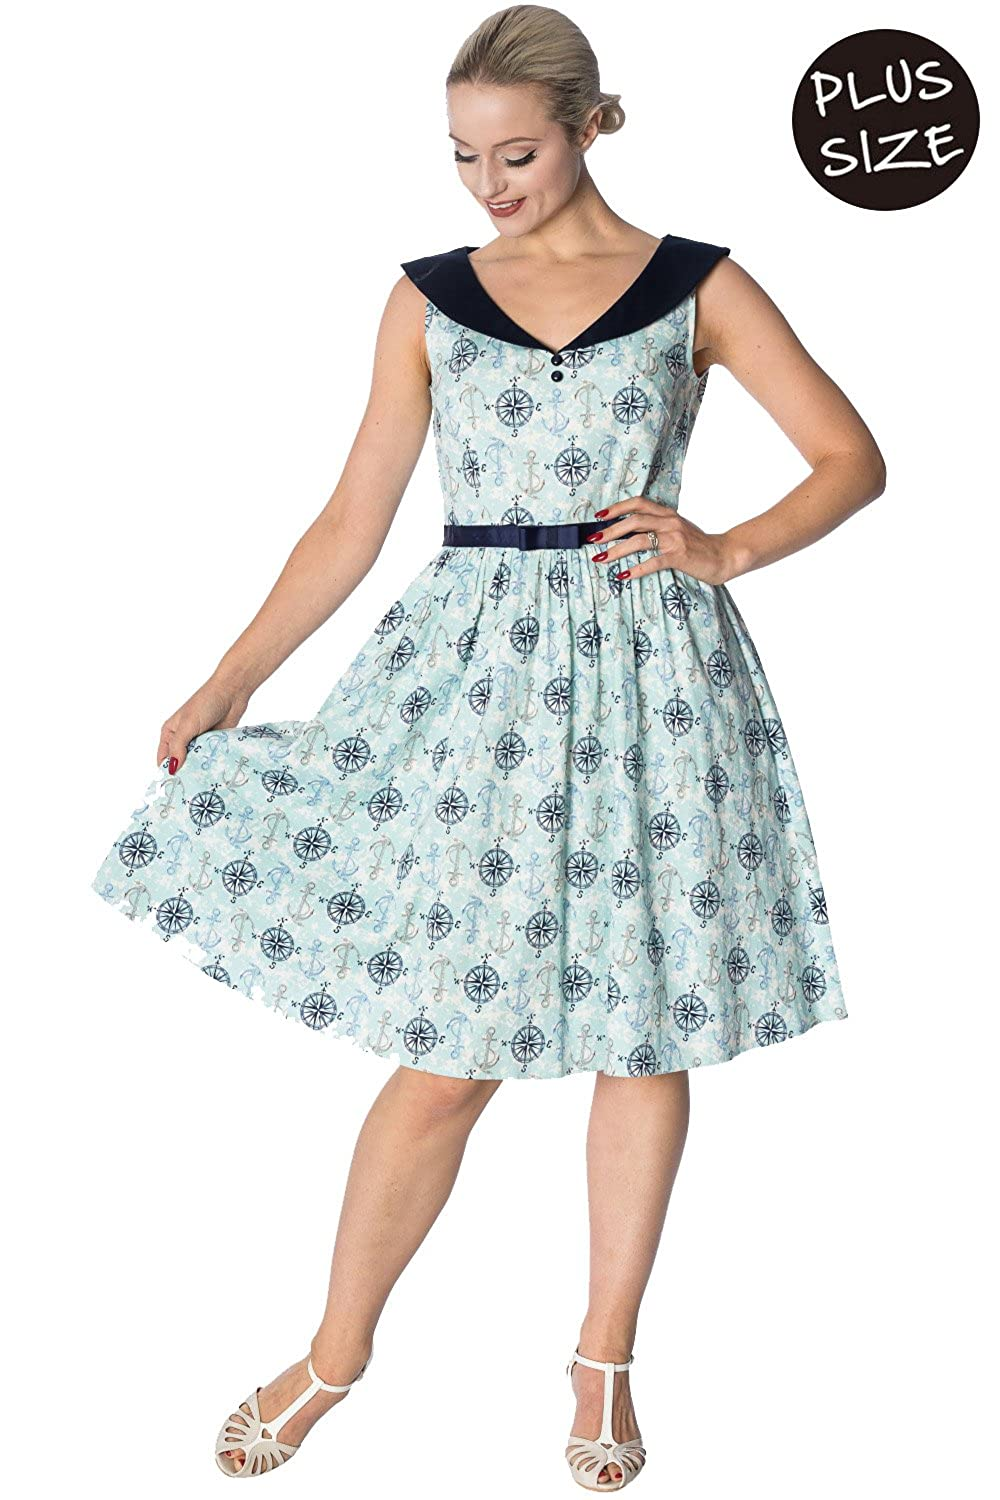 442395bd Vintage retro womens plus size dress by Banned Apparel knee length pleated  dress finished in pale blue with compass and anchor prints